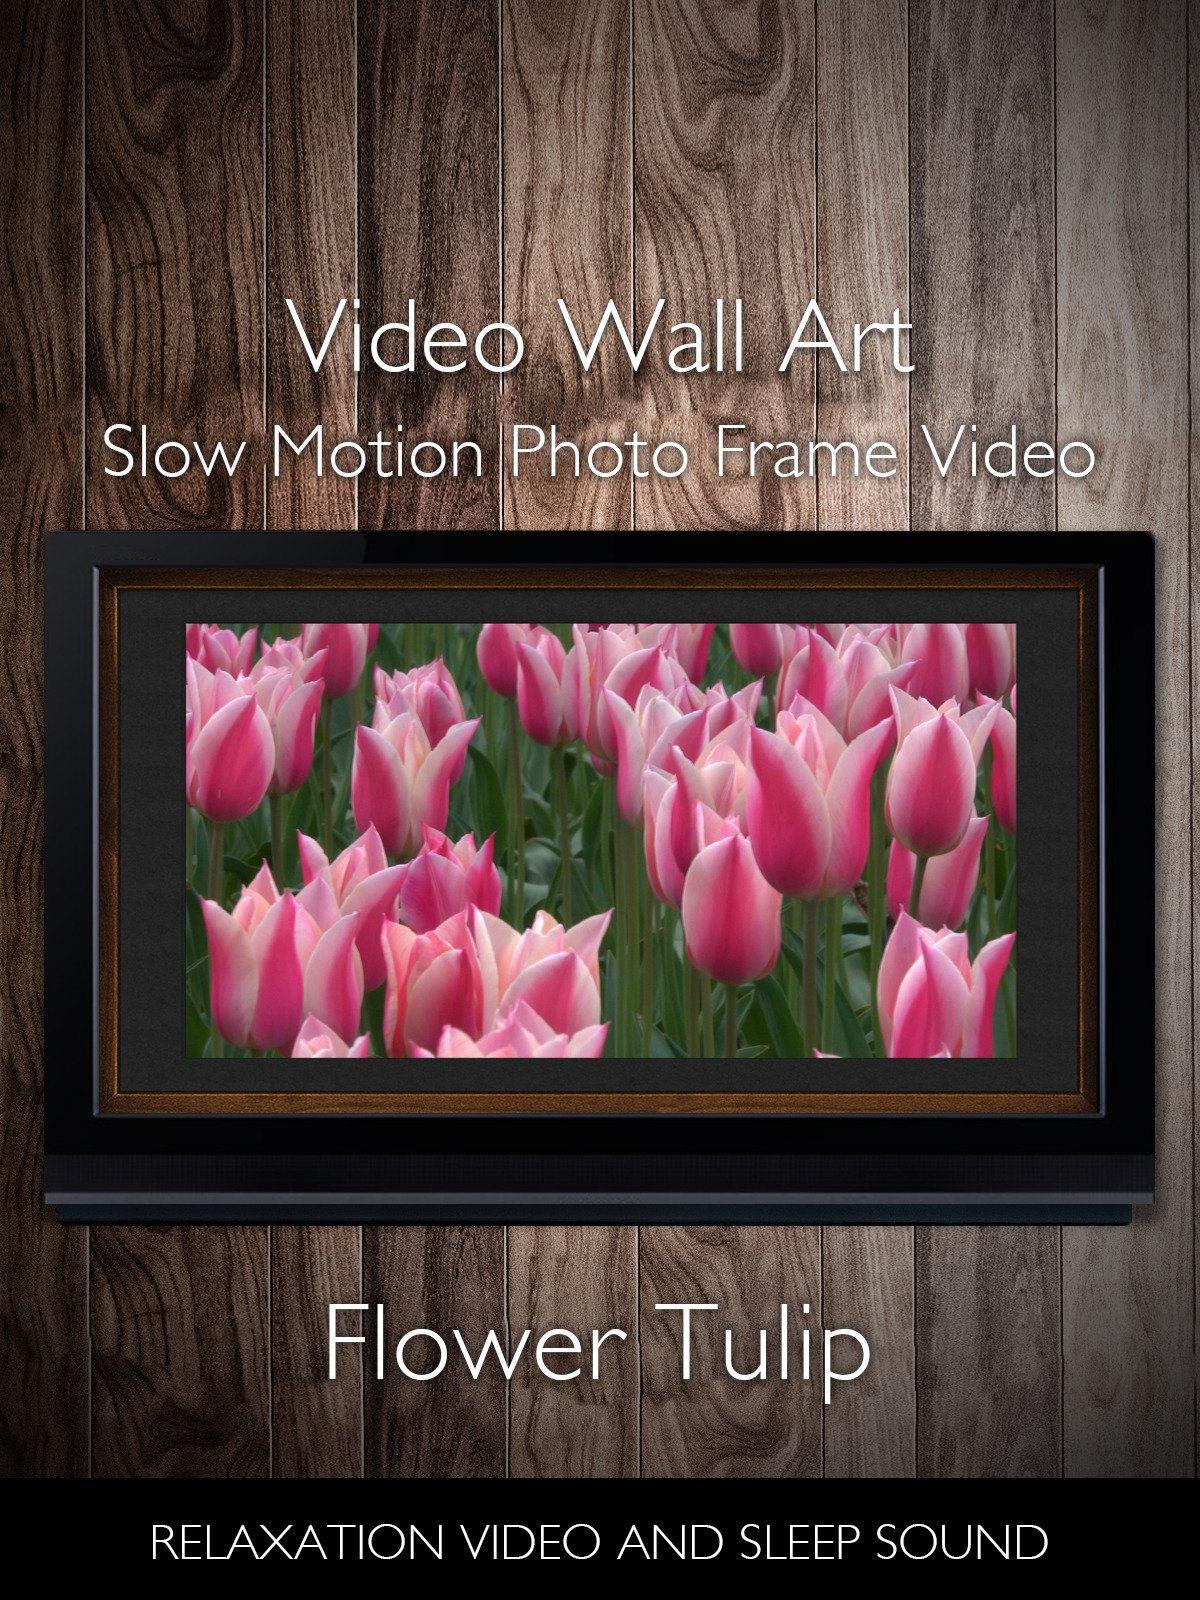 Video Wall Art Slow Motion Flower Tulip Photo Frame Video Relaxation Video and Sleep Sound